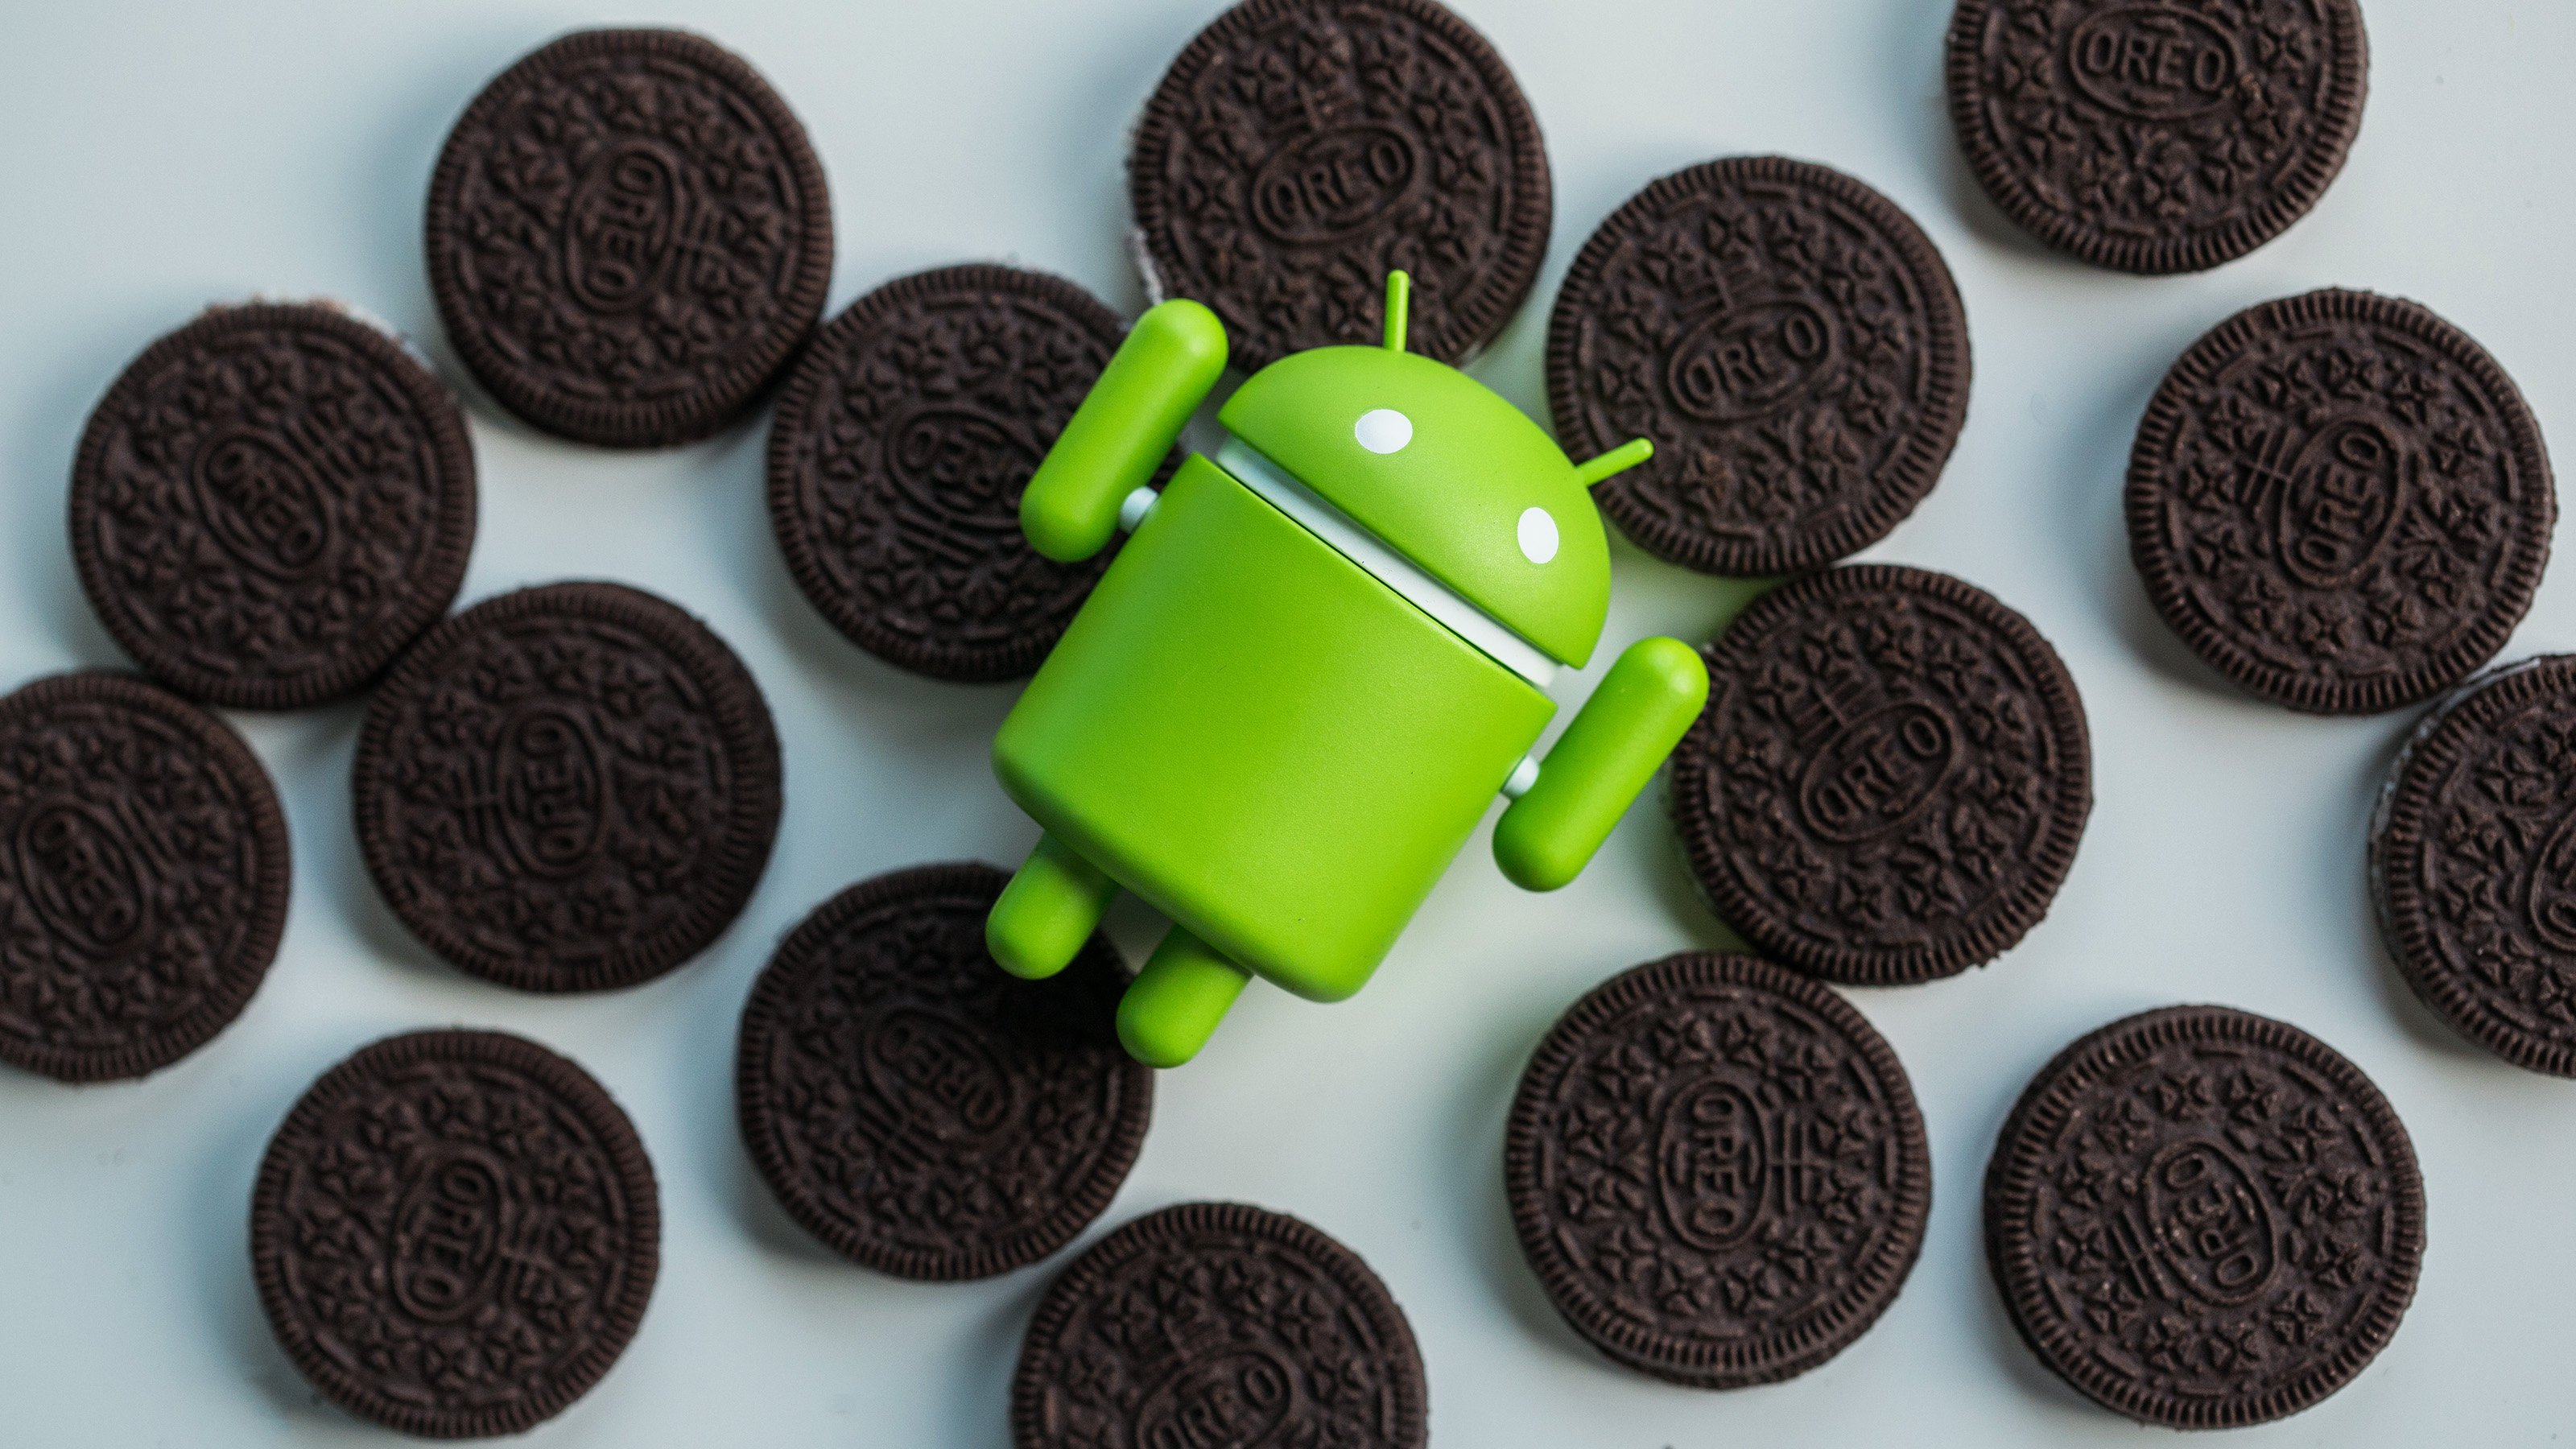 androidpit-android-o-oreo-2088